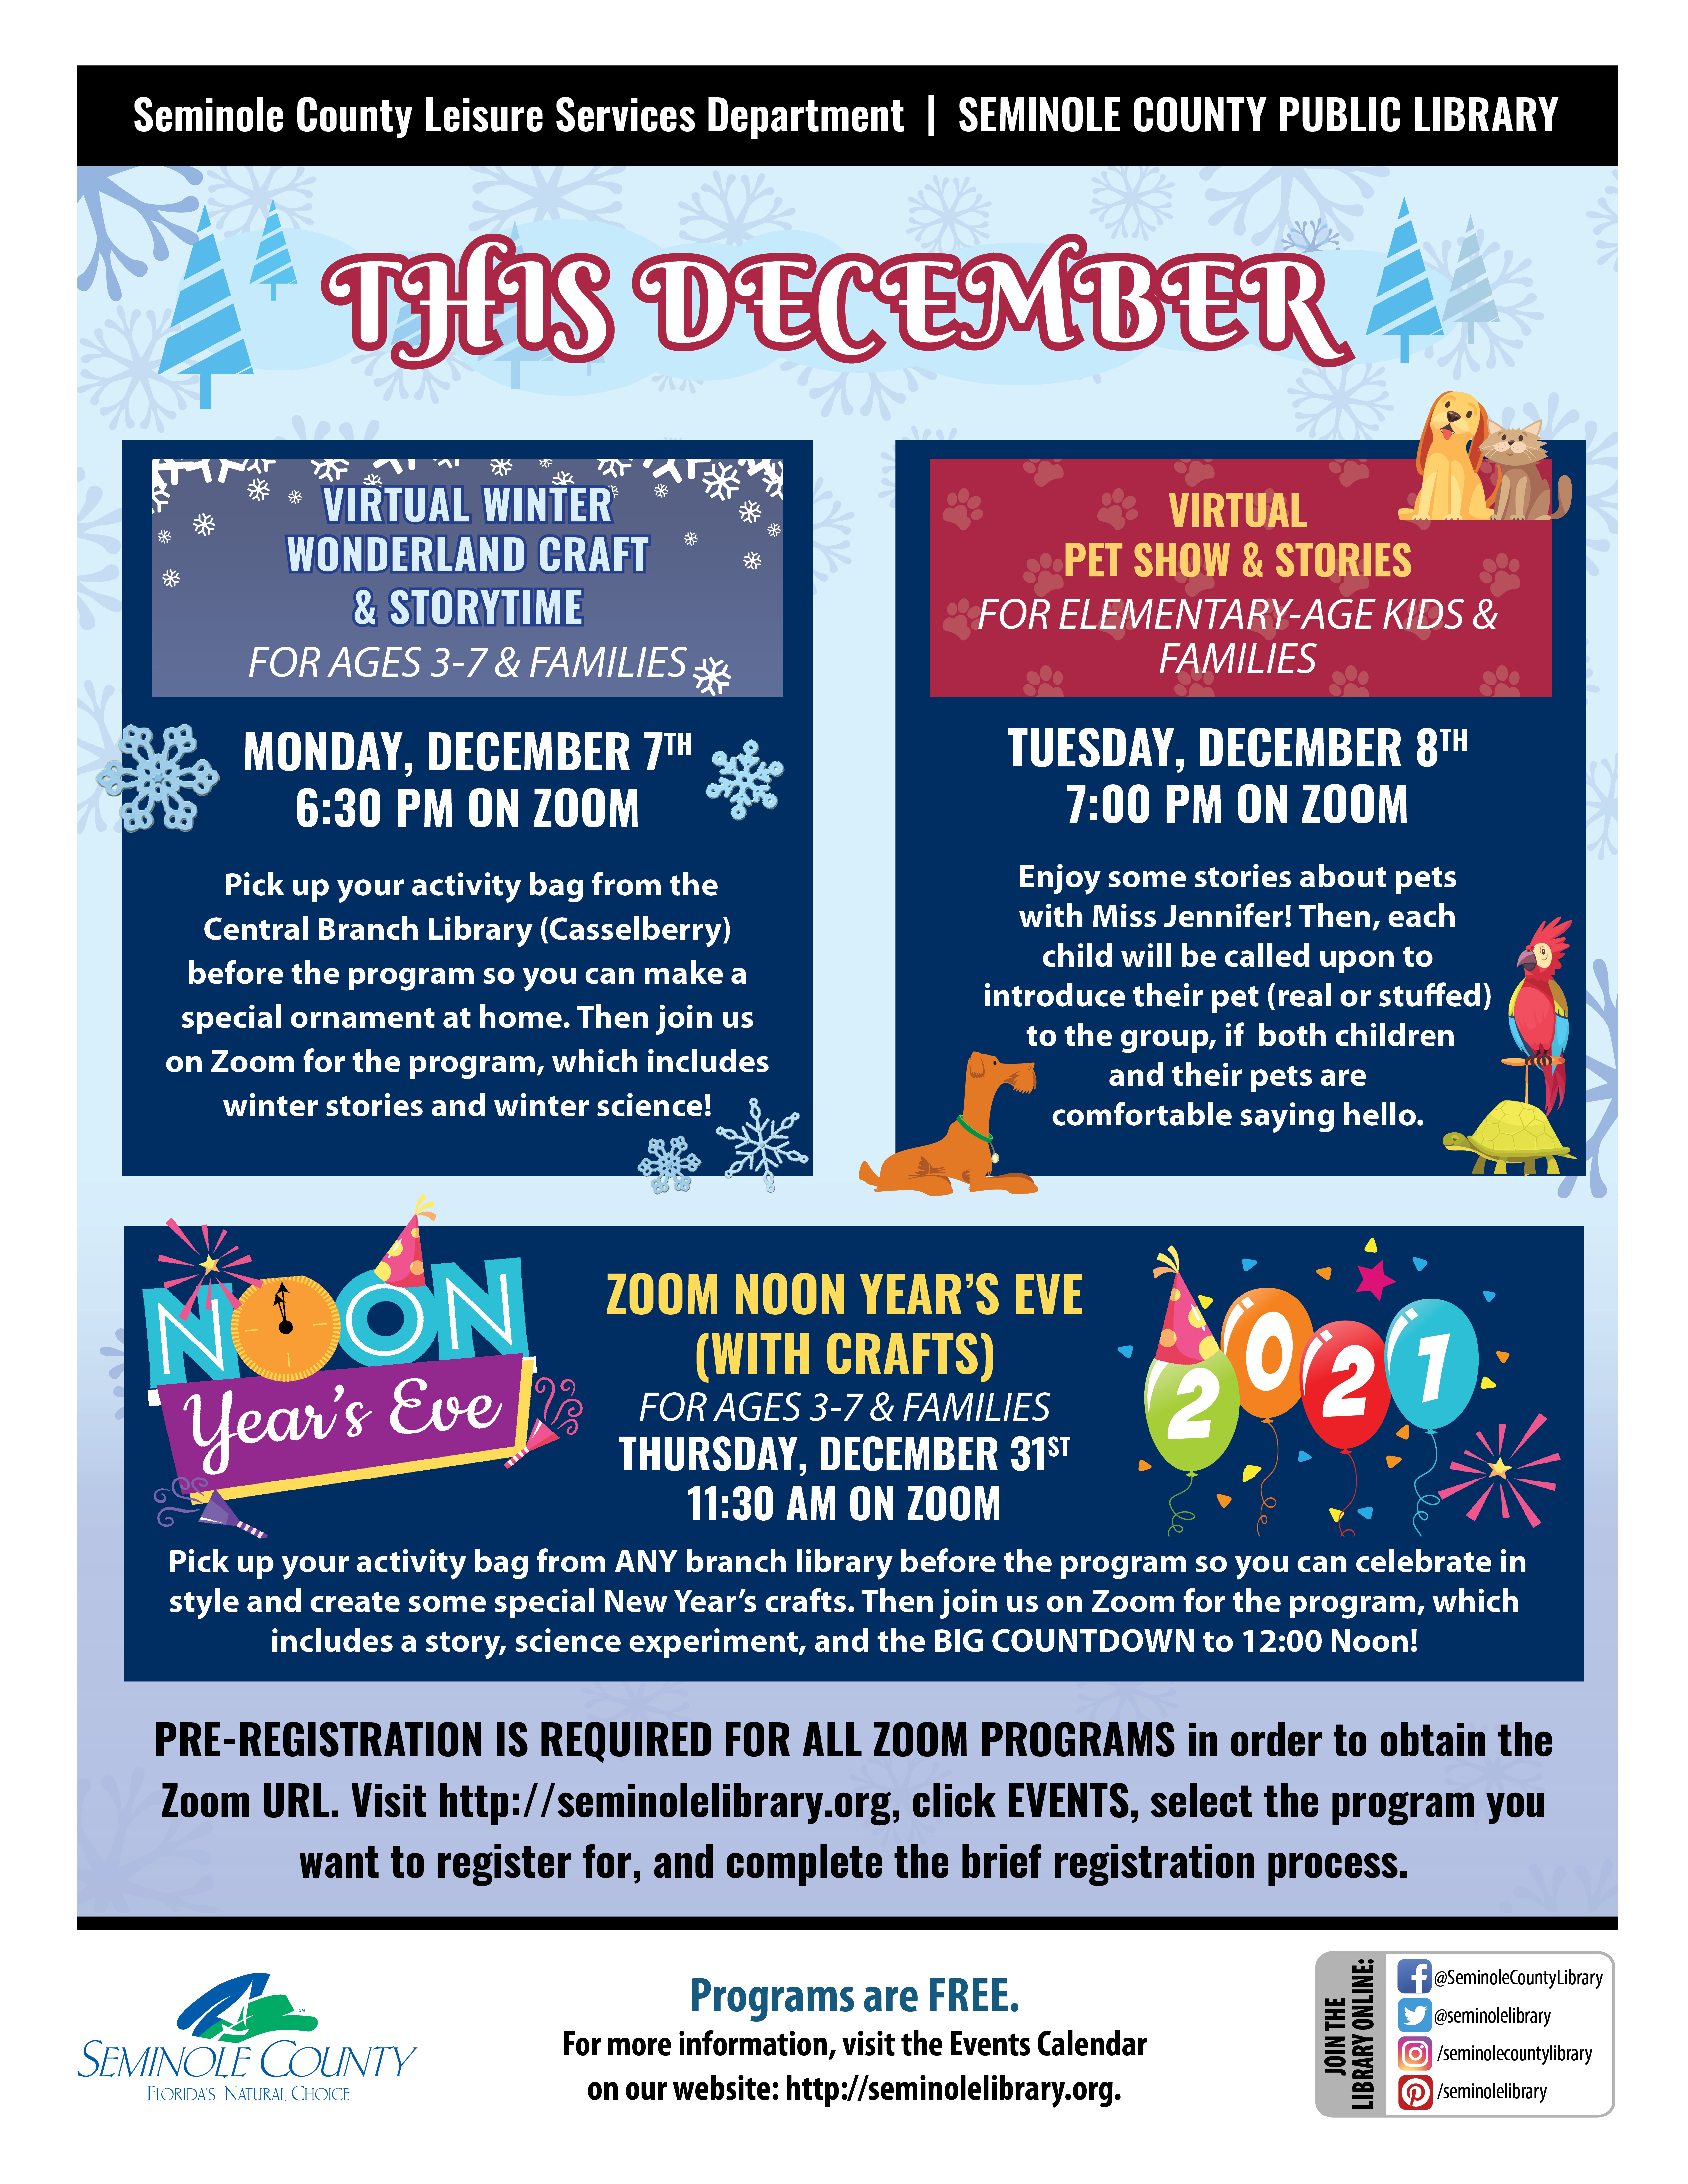 This December - Children's Zoom Programs from the Library